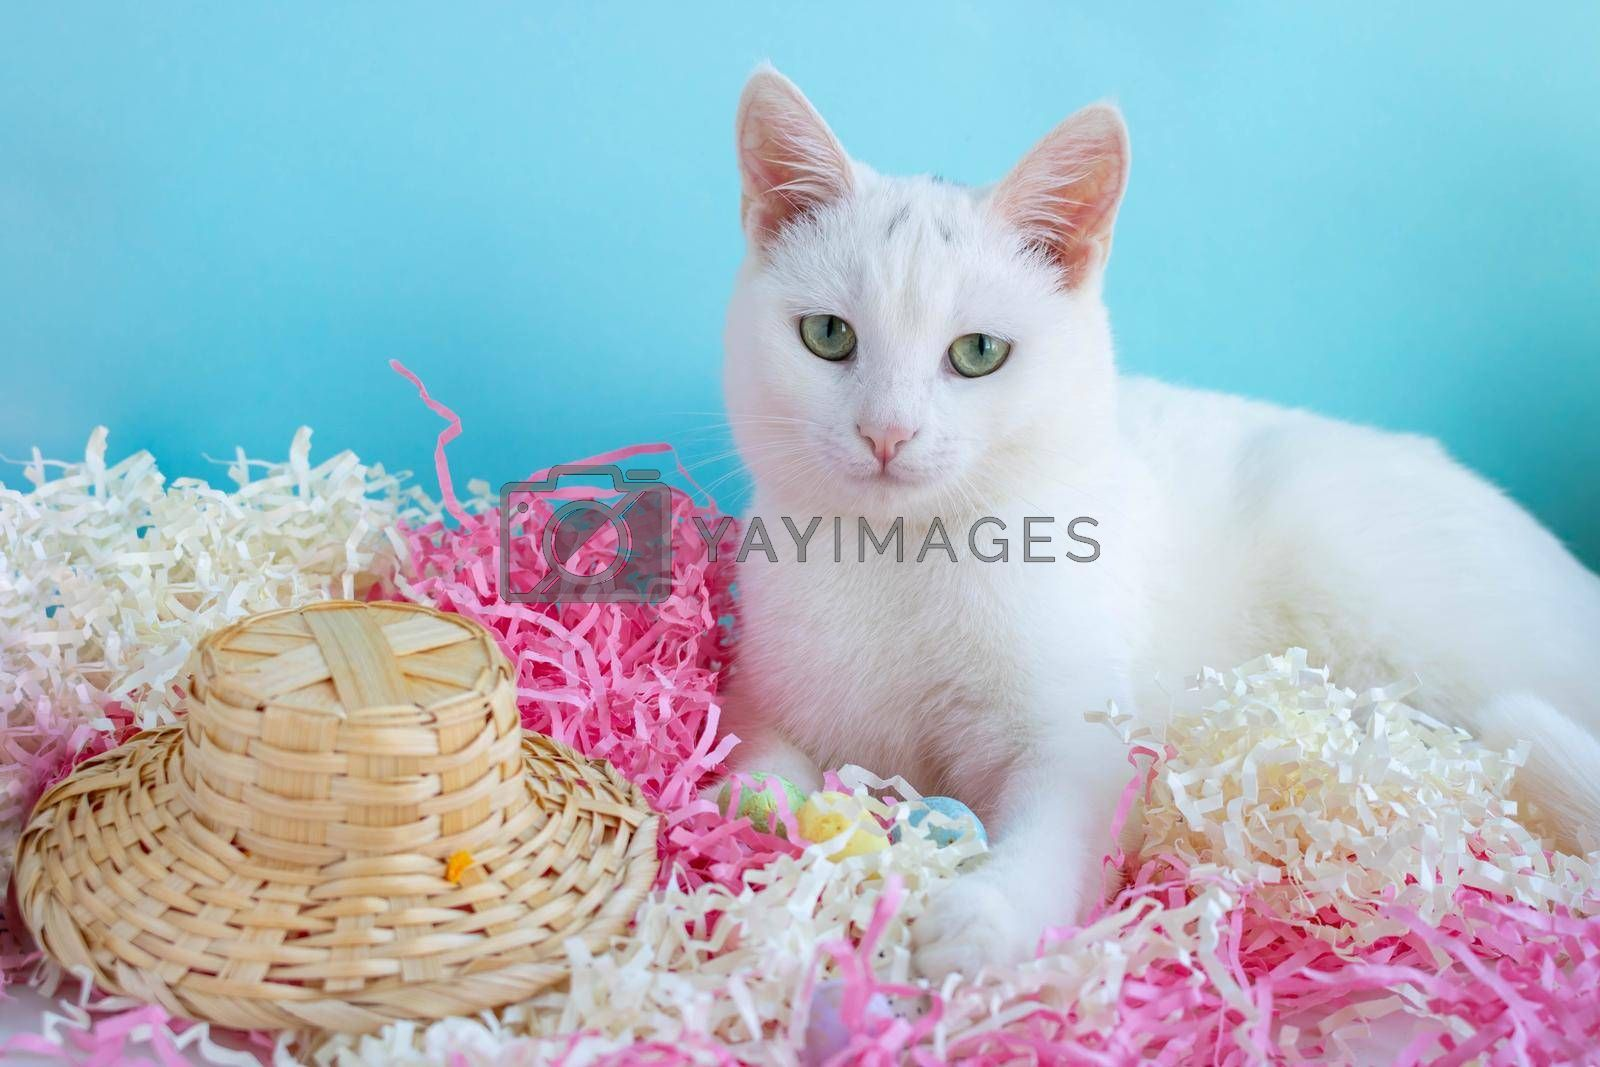 Royalty free image of A cute white cat lies on the tinsel next to eggs and a straw hat. Easter Concept by lapushka62